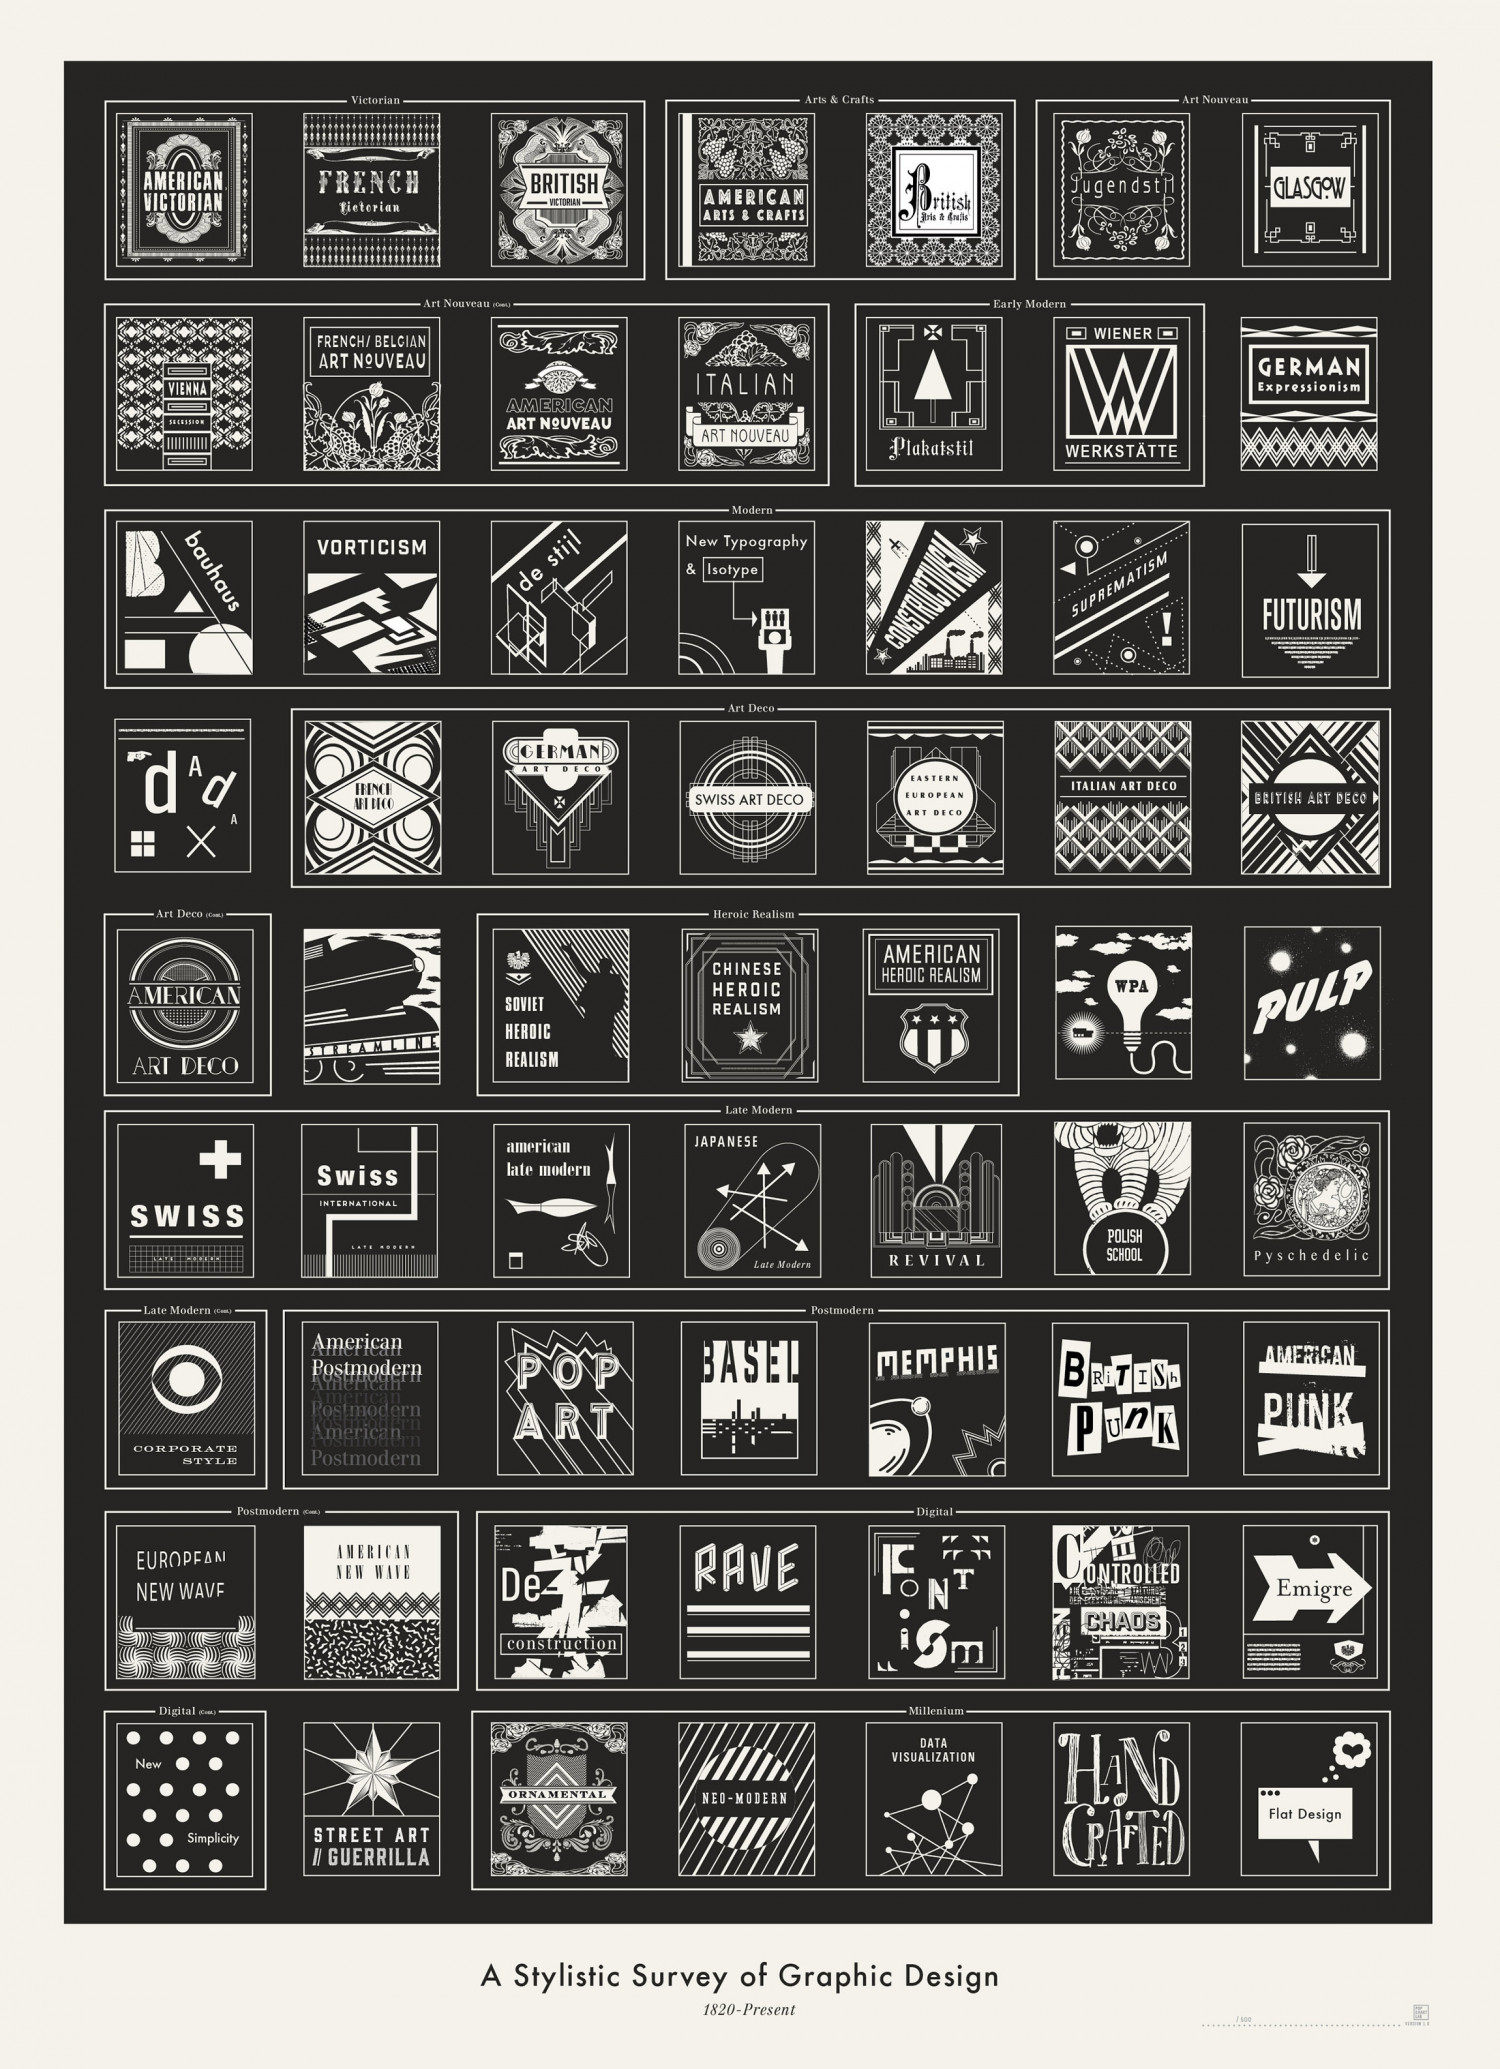 A Stylistic Survey of Graphic Design Infographic